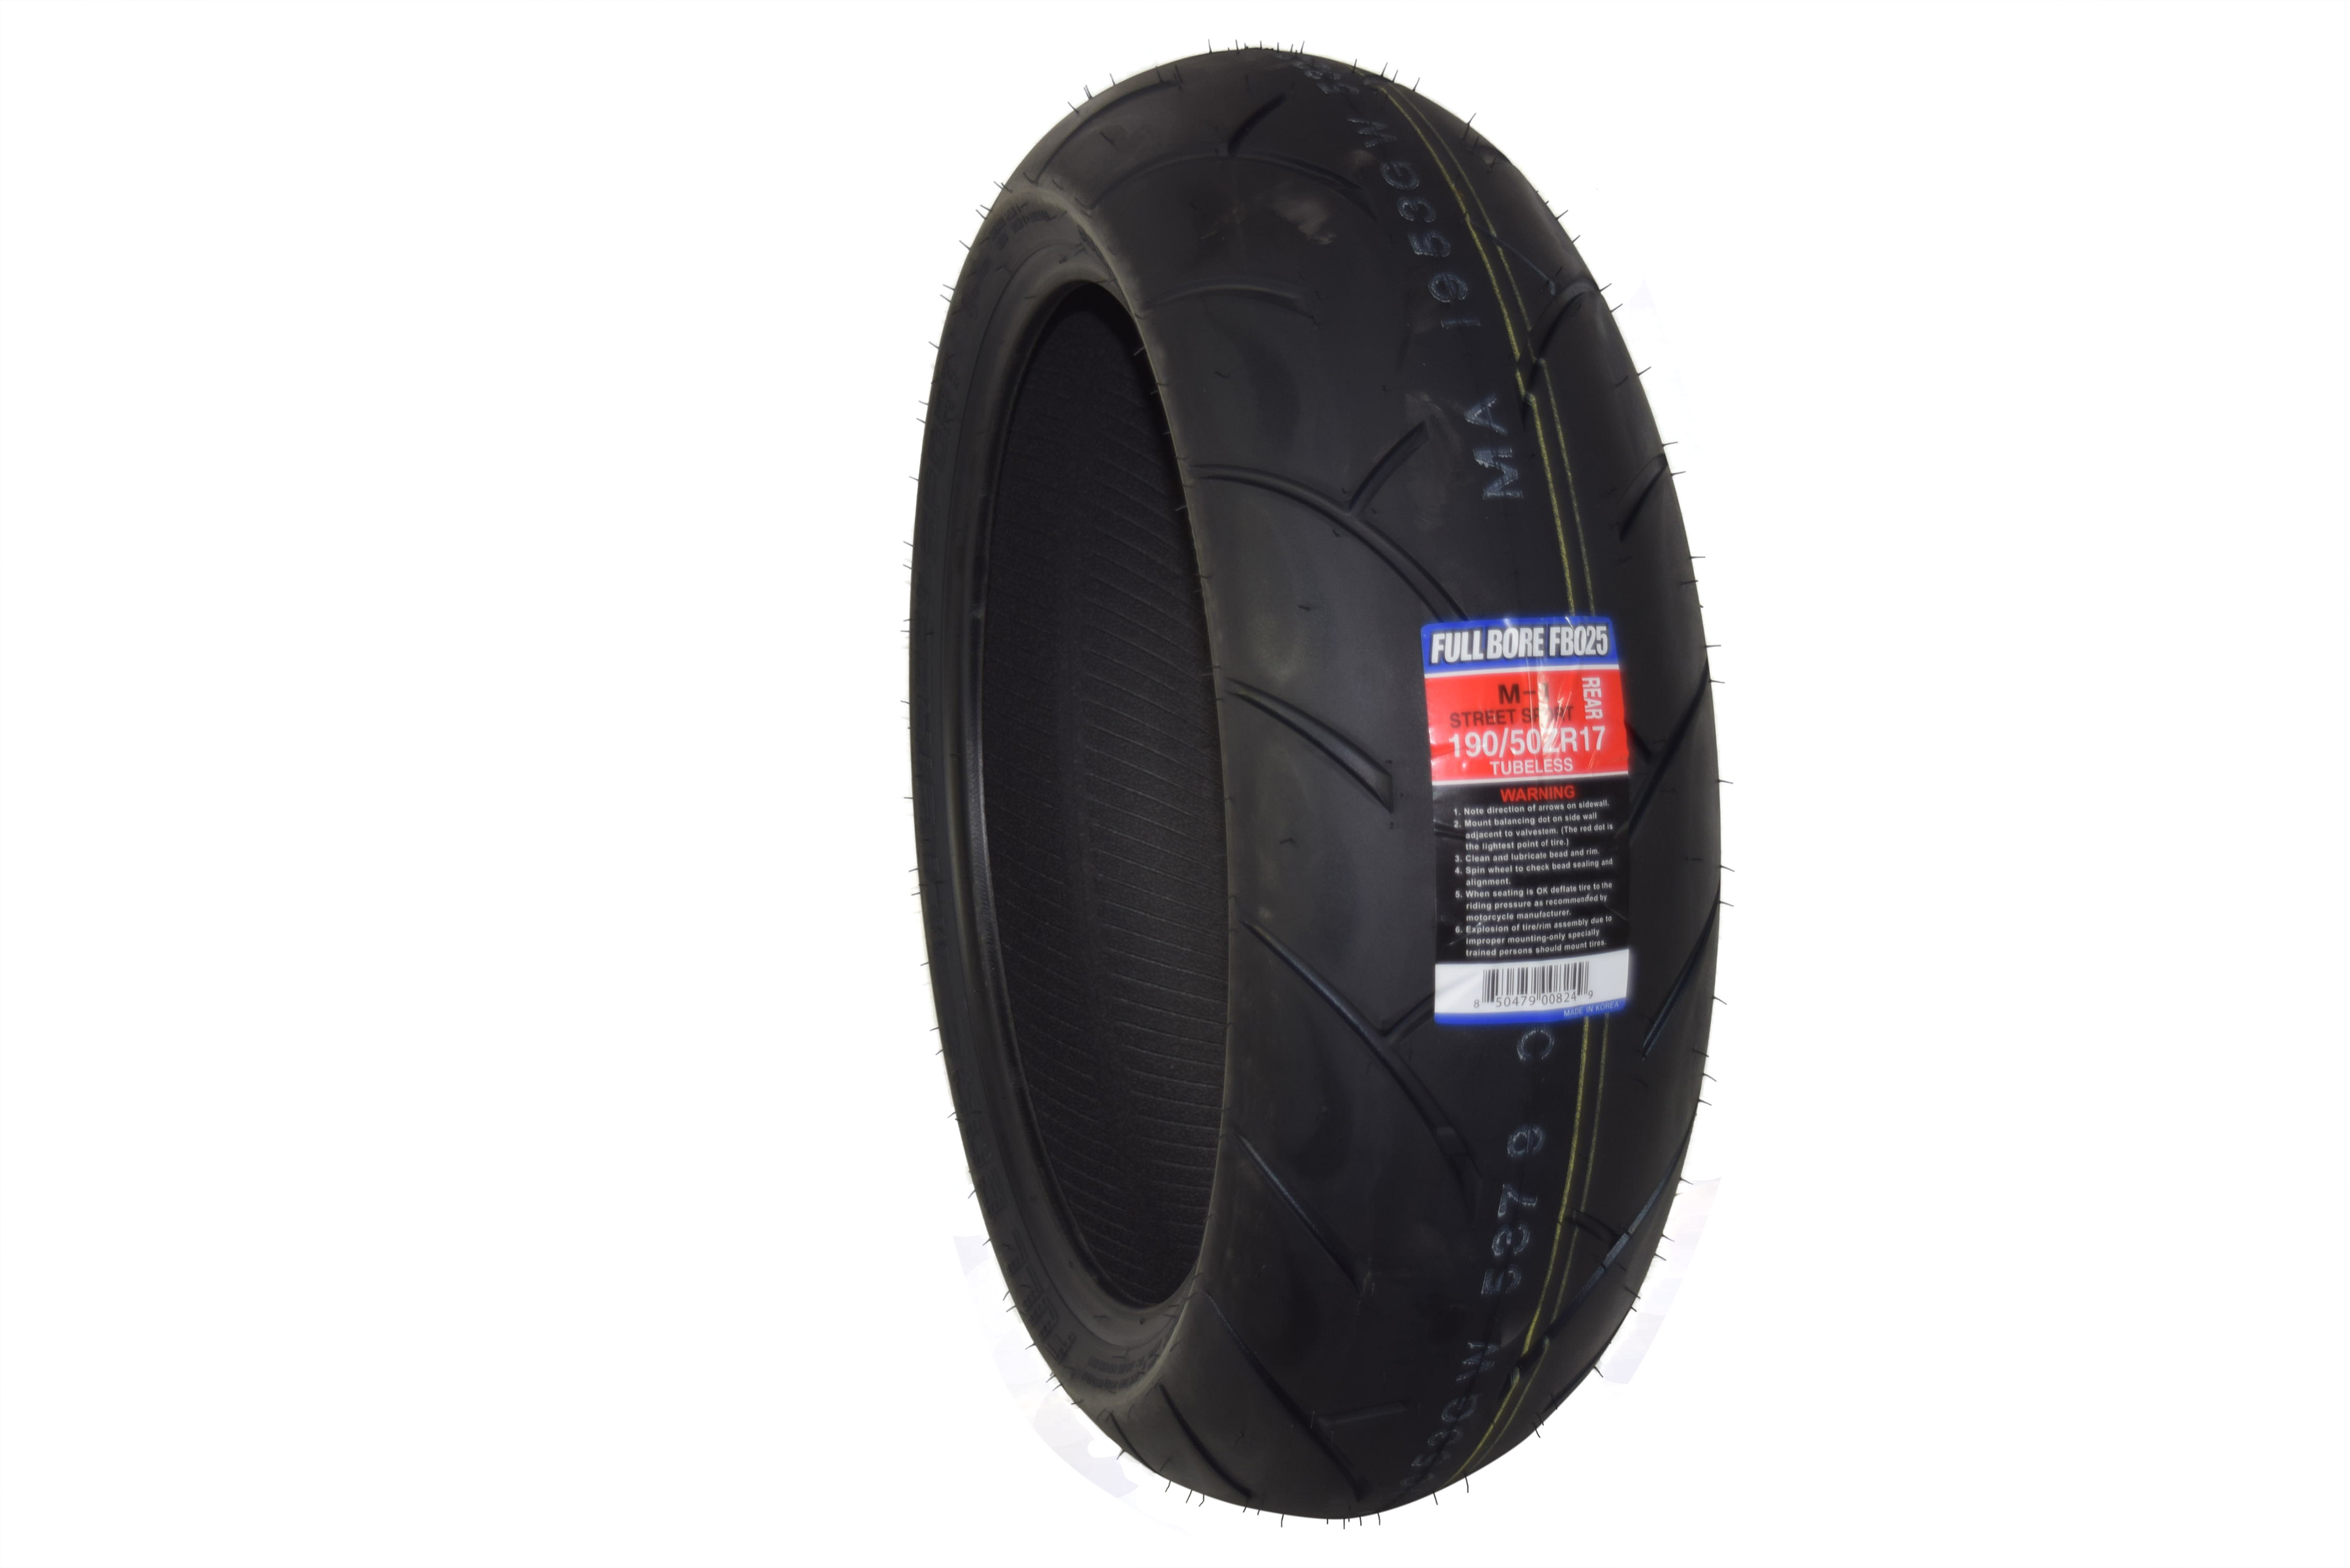 Full-Bore-120-70-17-F-190-50-17-R-Radial-Sportbike-Motorcycle-Tires-image-6